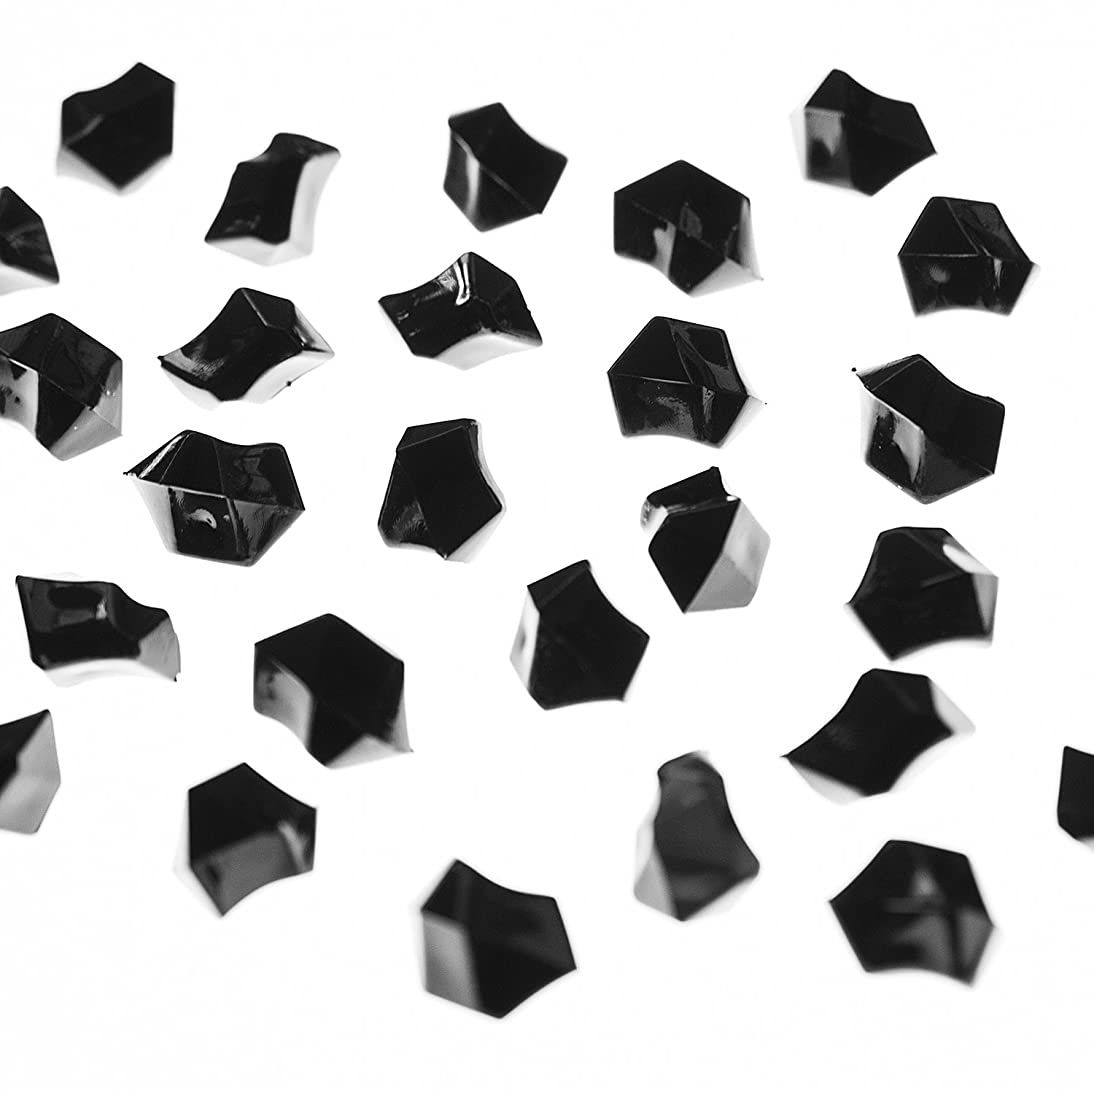 Super Z Outlet Acrylic Color Ice Rock Crystals Treasure Gems for Table Scatters, Vase Fillers, Event Decorations, Wedding, Birthday Decoration Favor (190 Pieces) (Black)